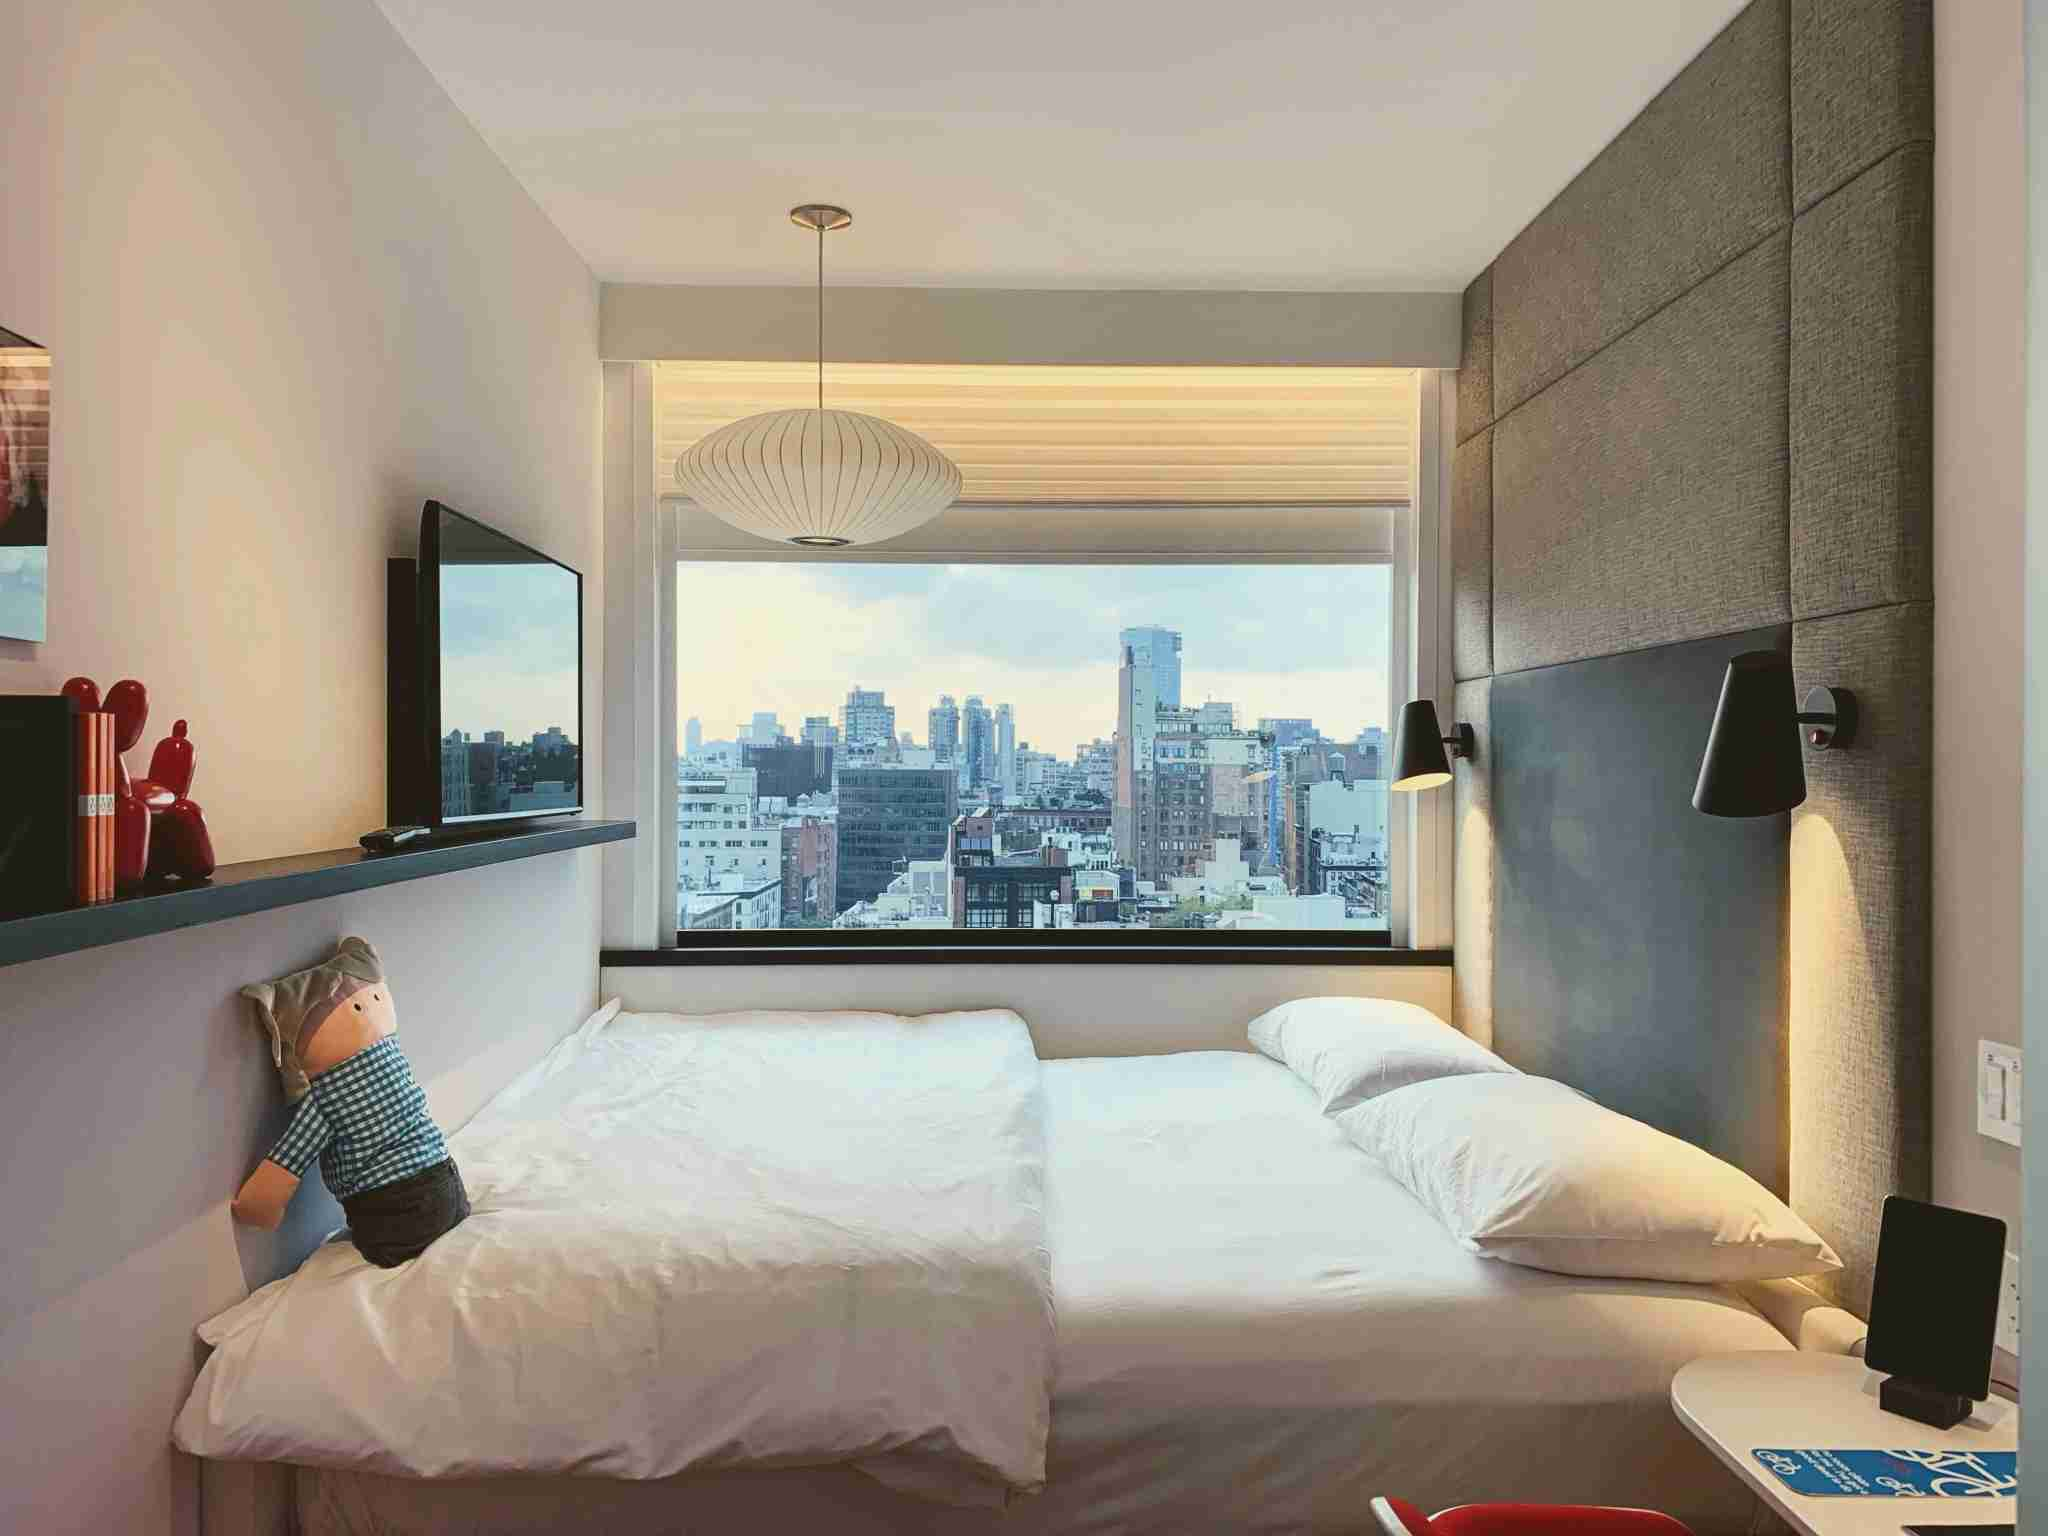 CitizenM Bowery New York Modular Hotel Room and NYC View (Photo by Darren Murph / The Points Guy)